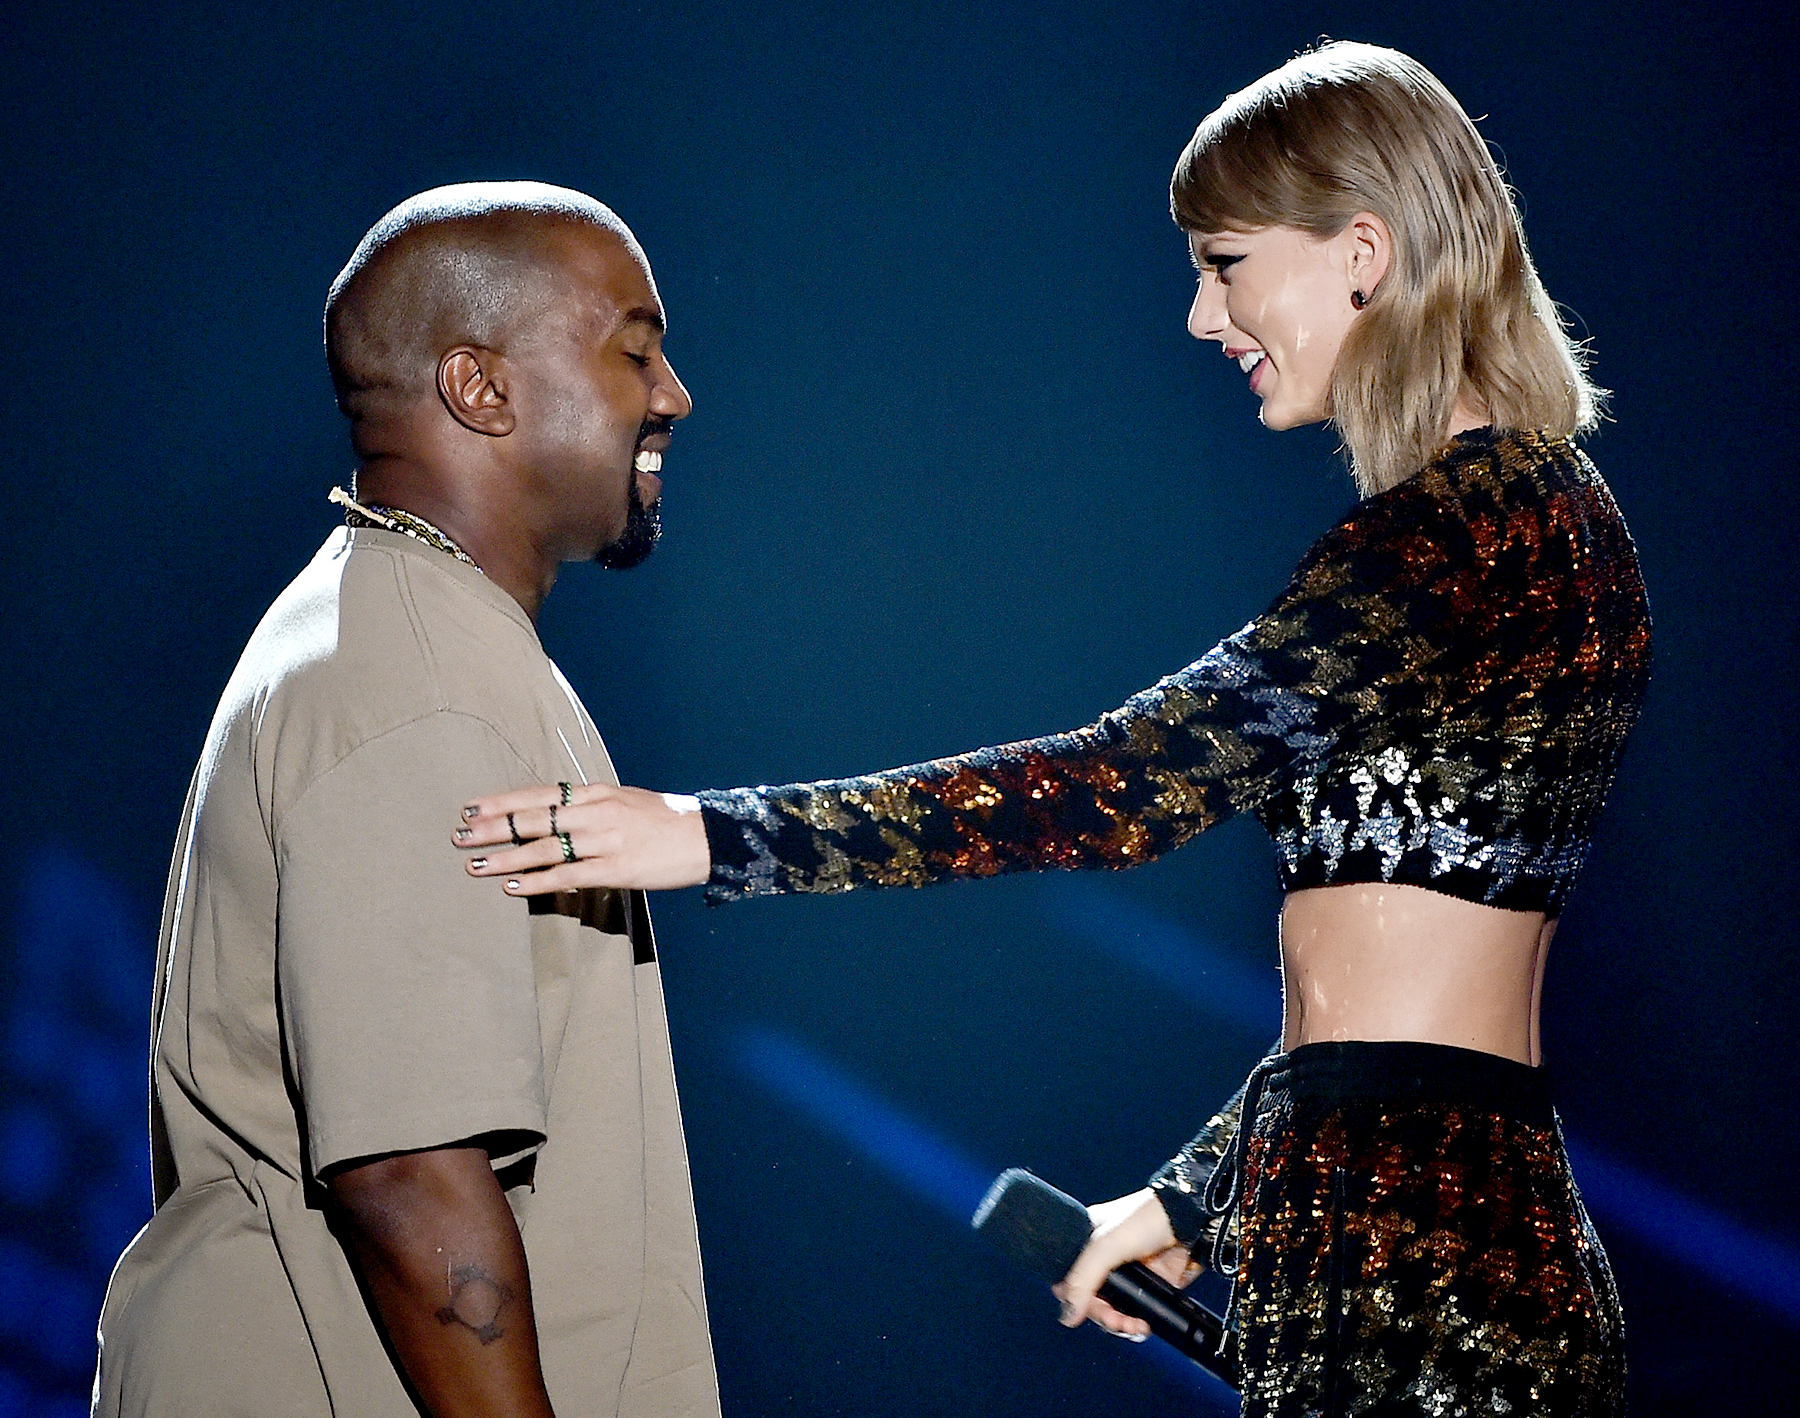 Recording artist Kanye West accepts the Video Vanguard Award from Taylor Swift onstage during the 2015 MTV Video Music Awards.